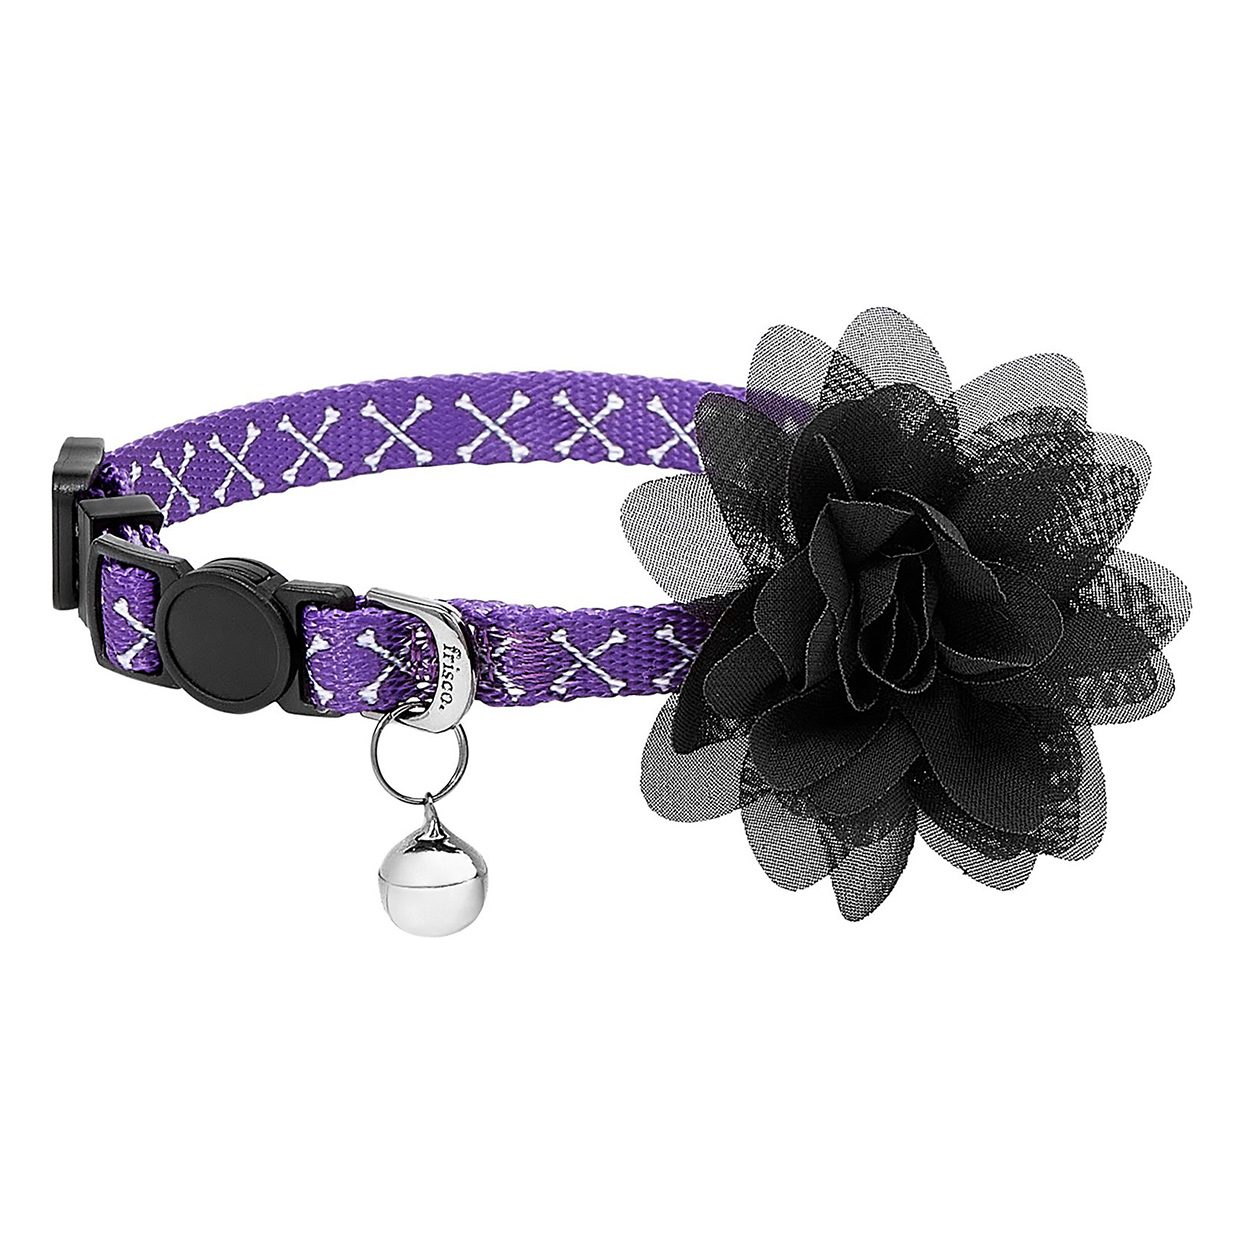 Frisco Crossbones Cat Collar with Black Flower on a white background